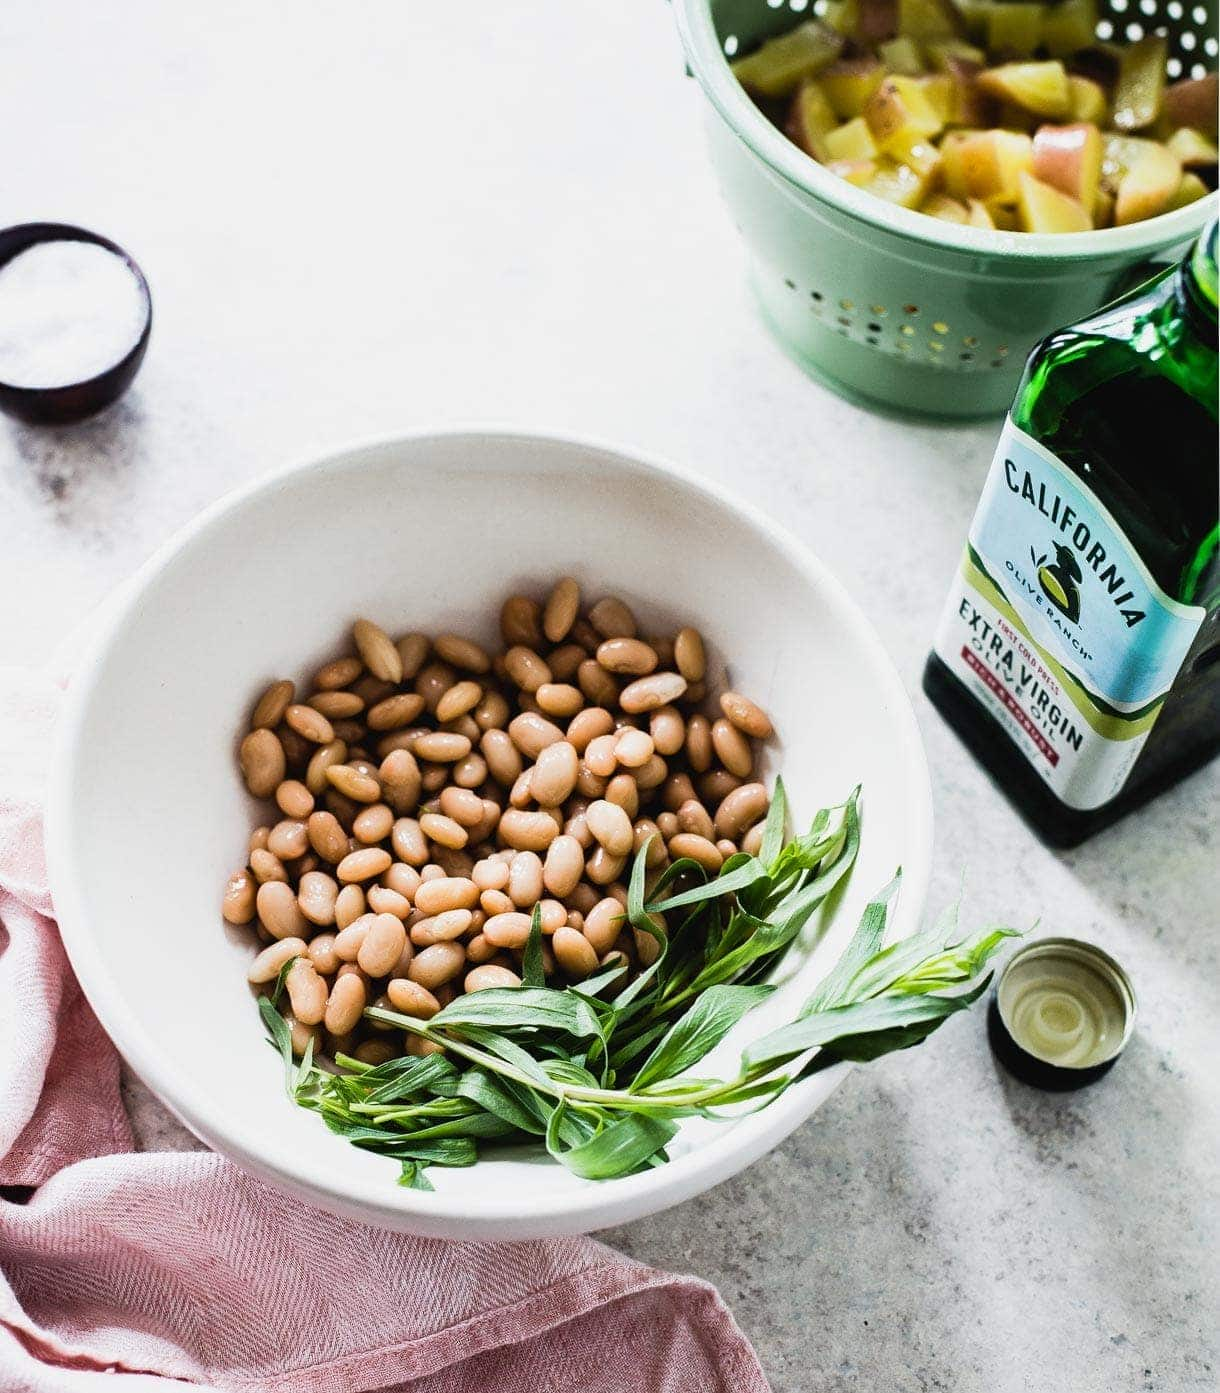 White Beans and Potatoes Marinated in Olive Oil